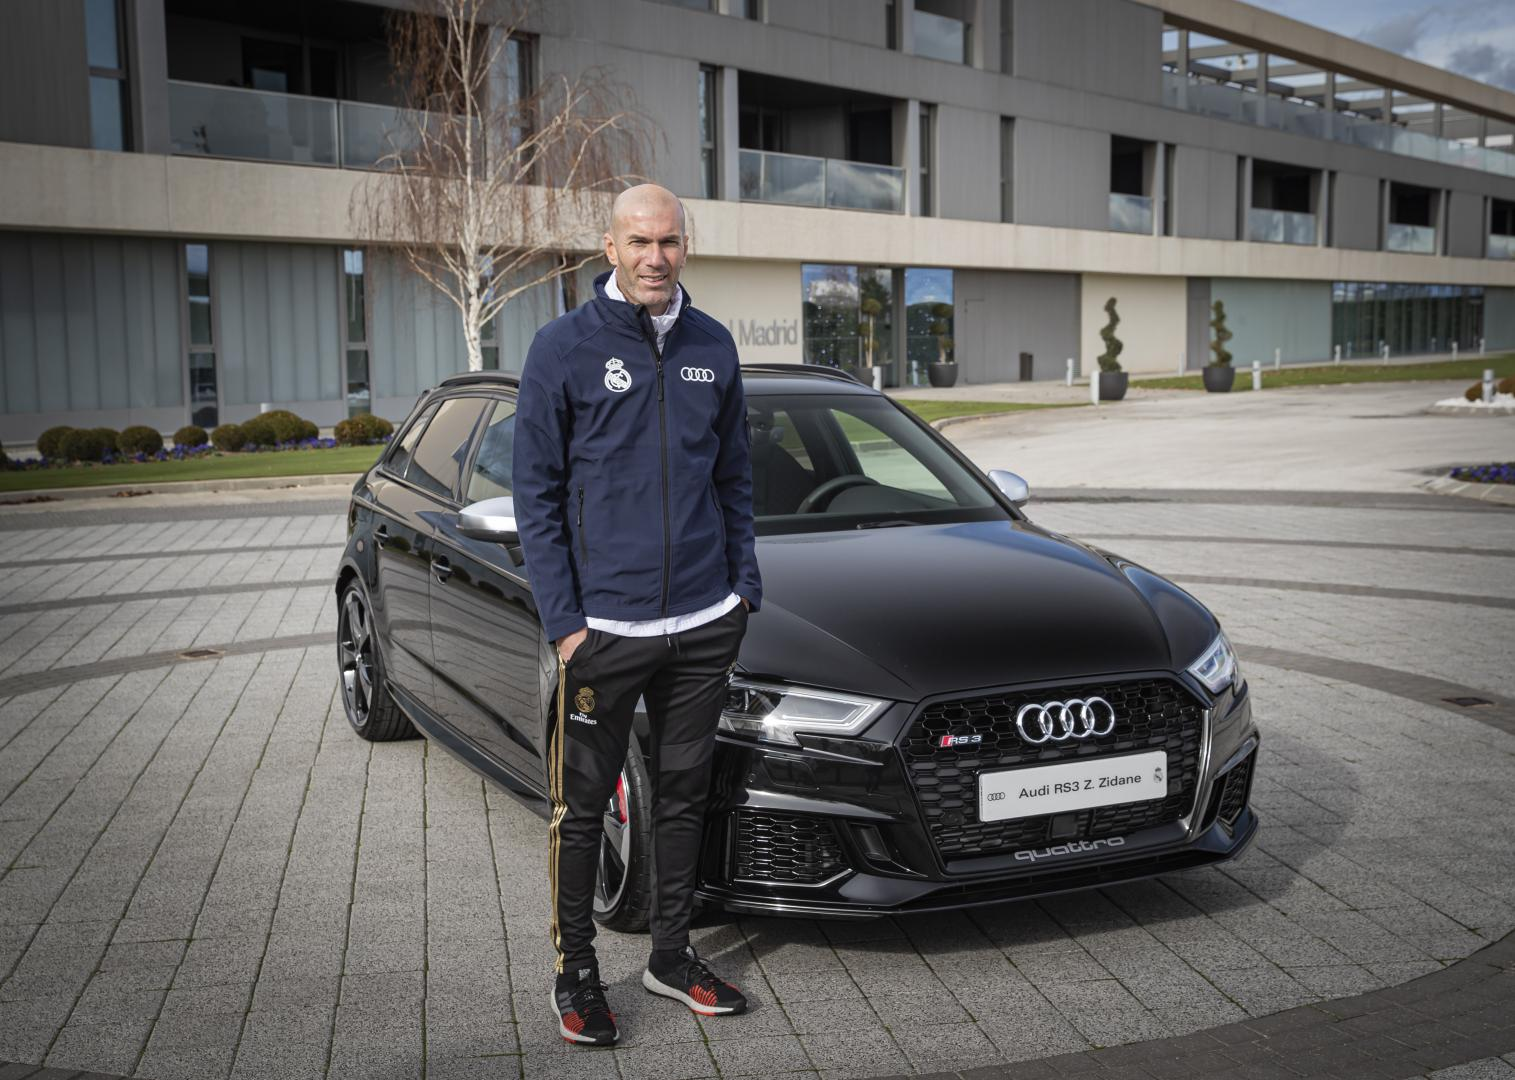 Real Madrid Audi RS3 Zidane